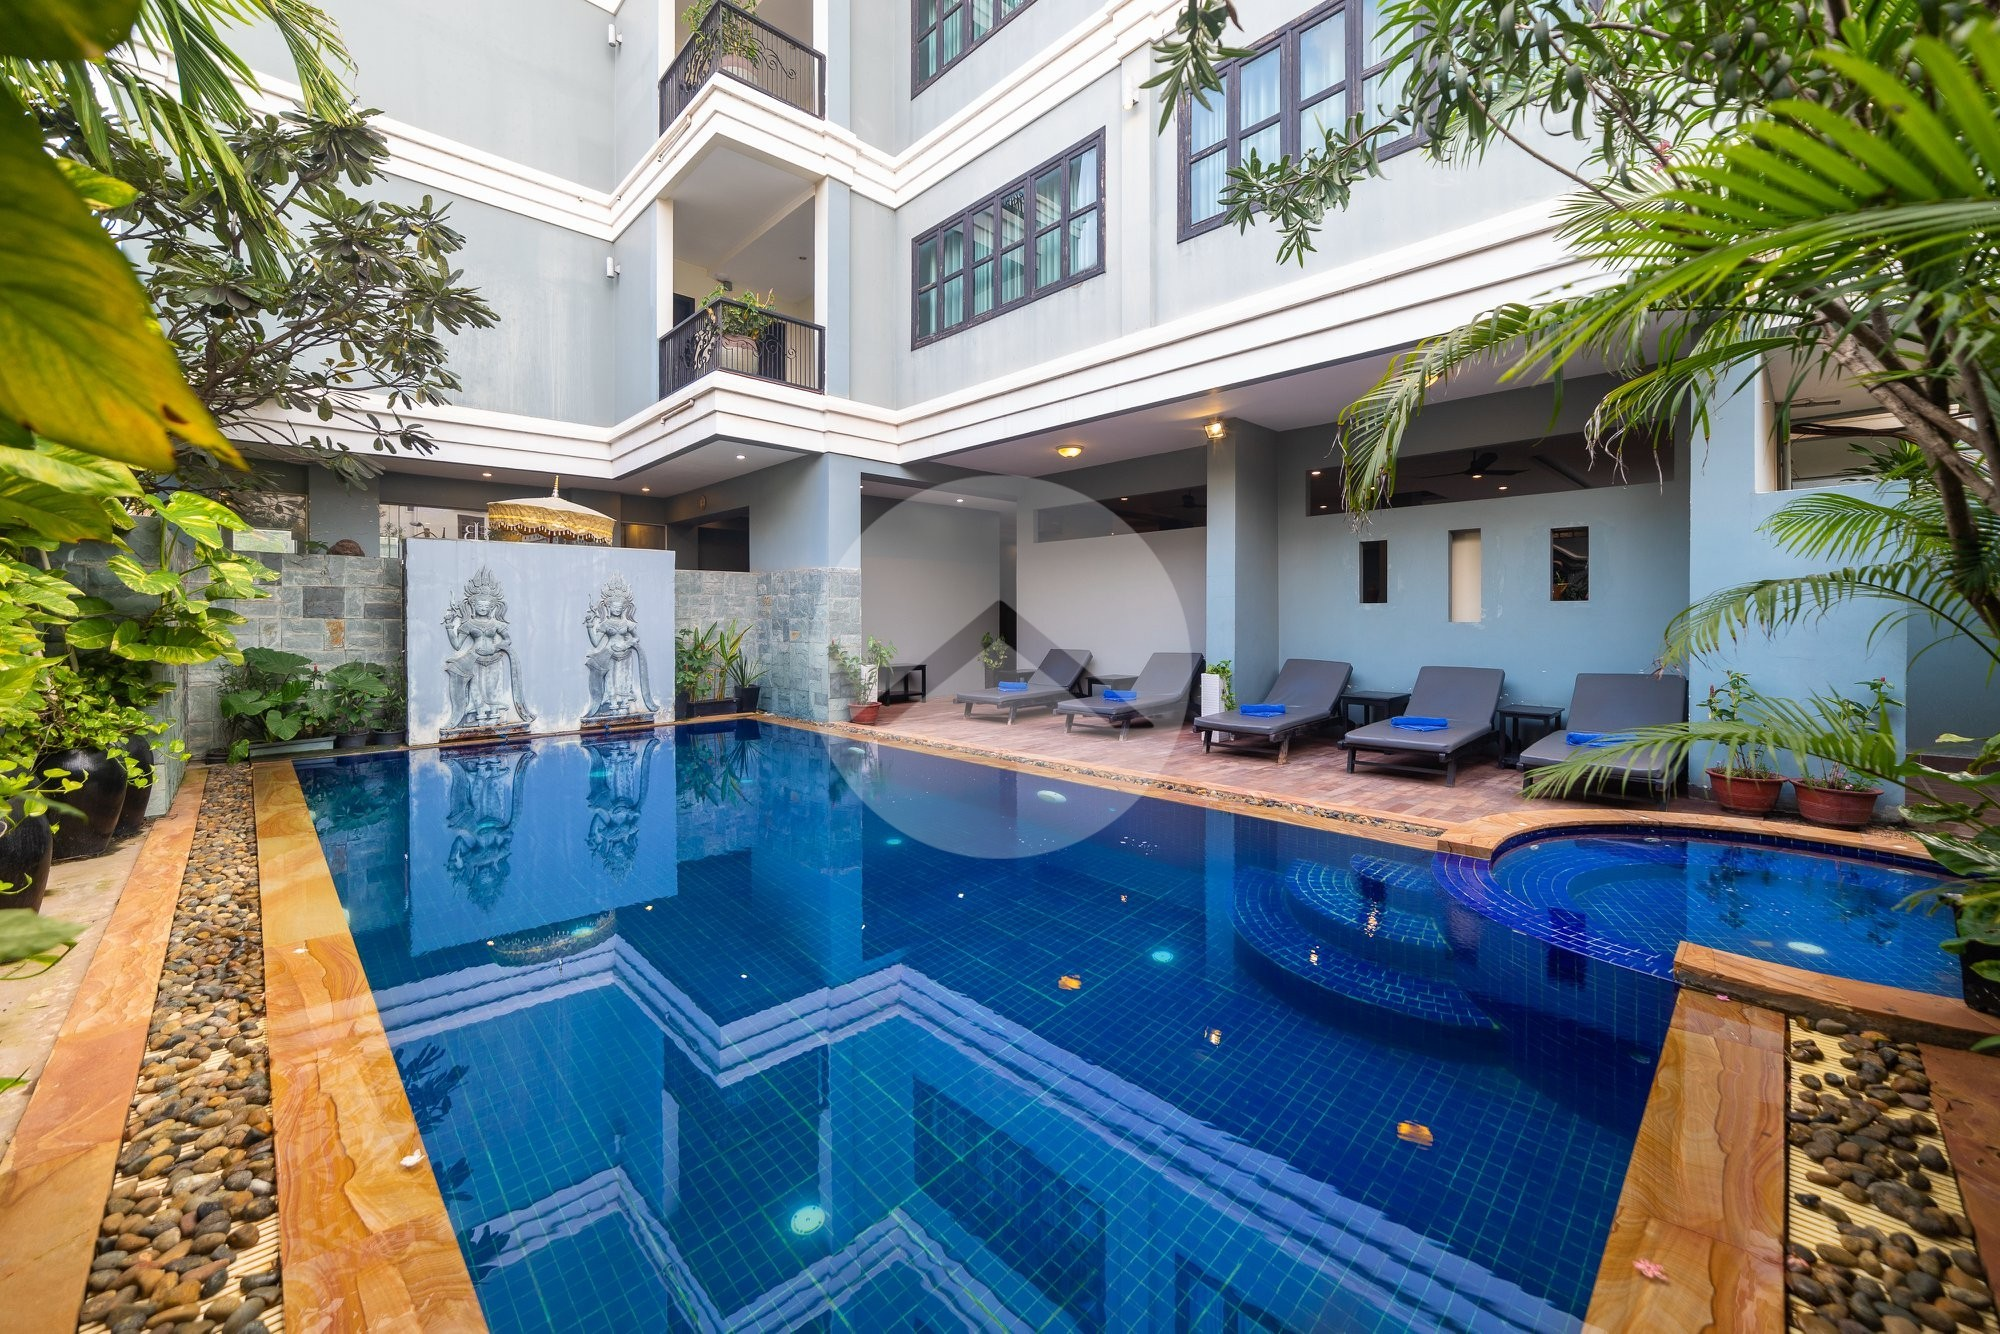 36 Room Boutique Hotel Compound For Rent - Night Market Area, Siem Reap